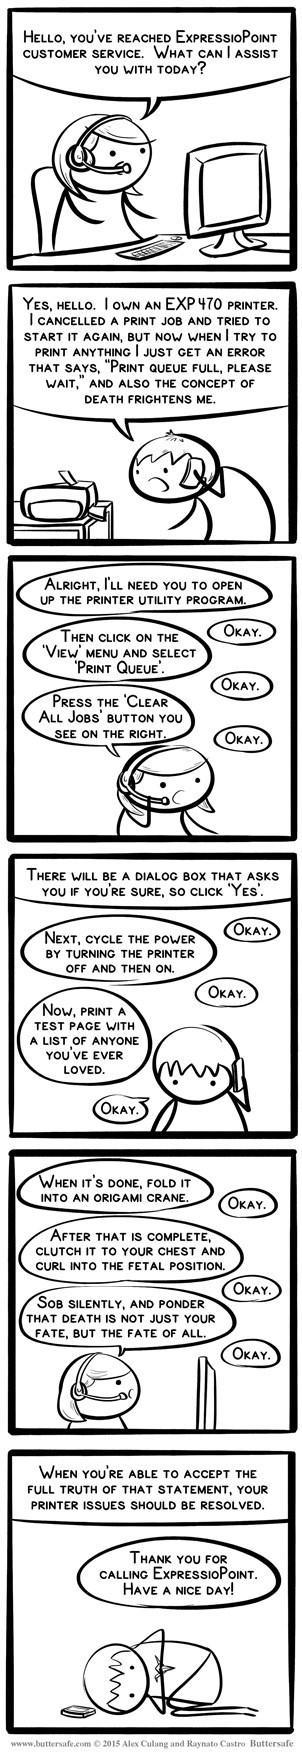 funny-web-comics-printer-problems